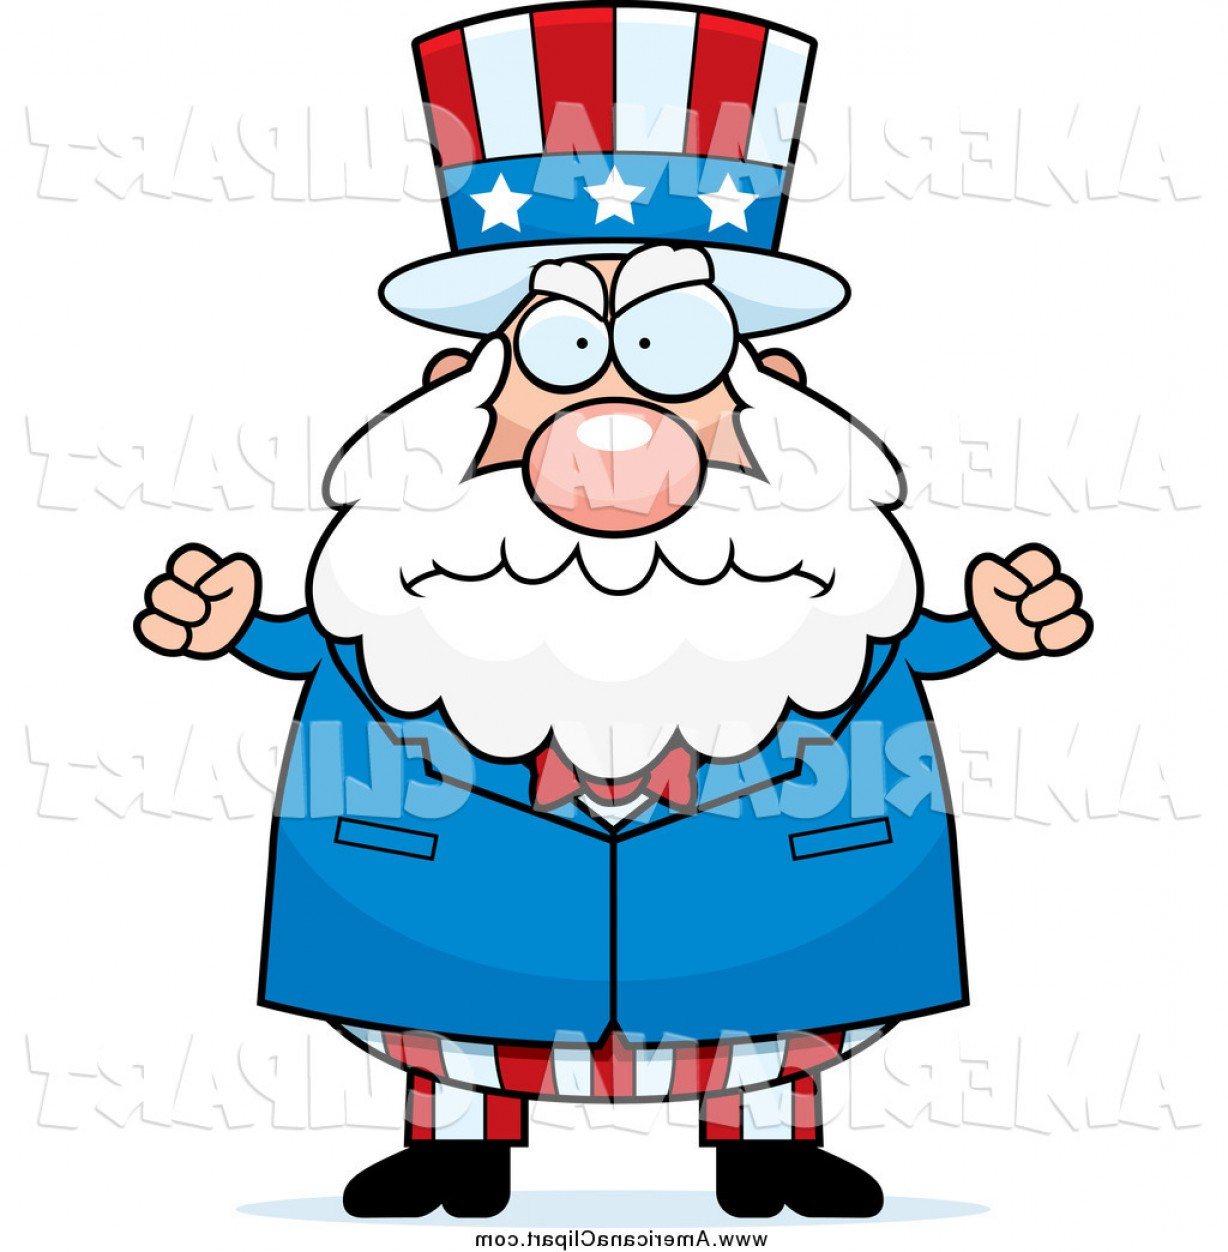 Americana Vector Art: Larger Preview Americana Vector Cartoon Clip Art Of A Chubby Old Clipart